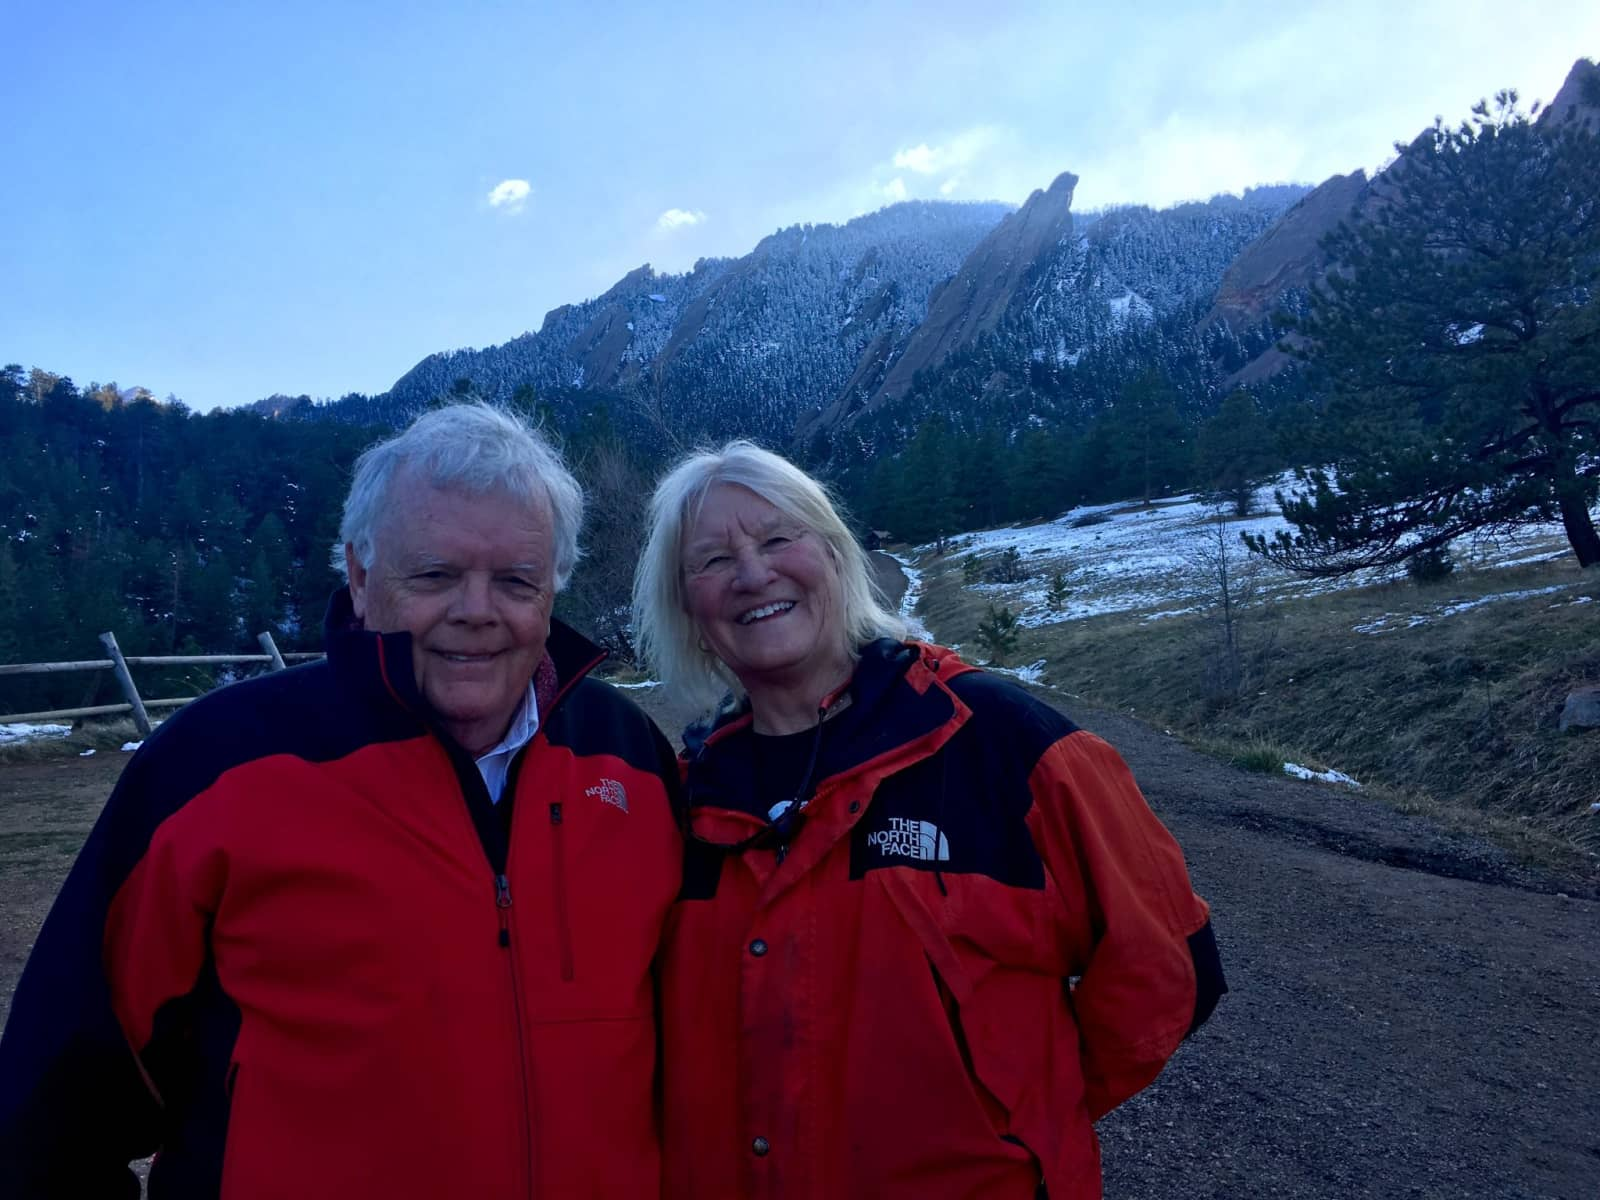 Leslie & Jim from Seattle, Washington, United States